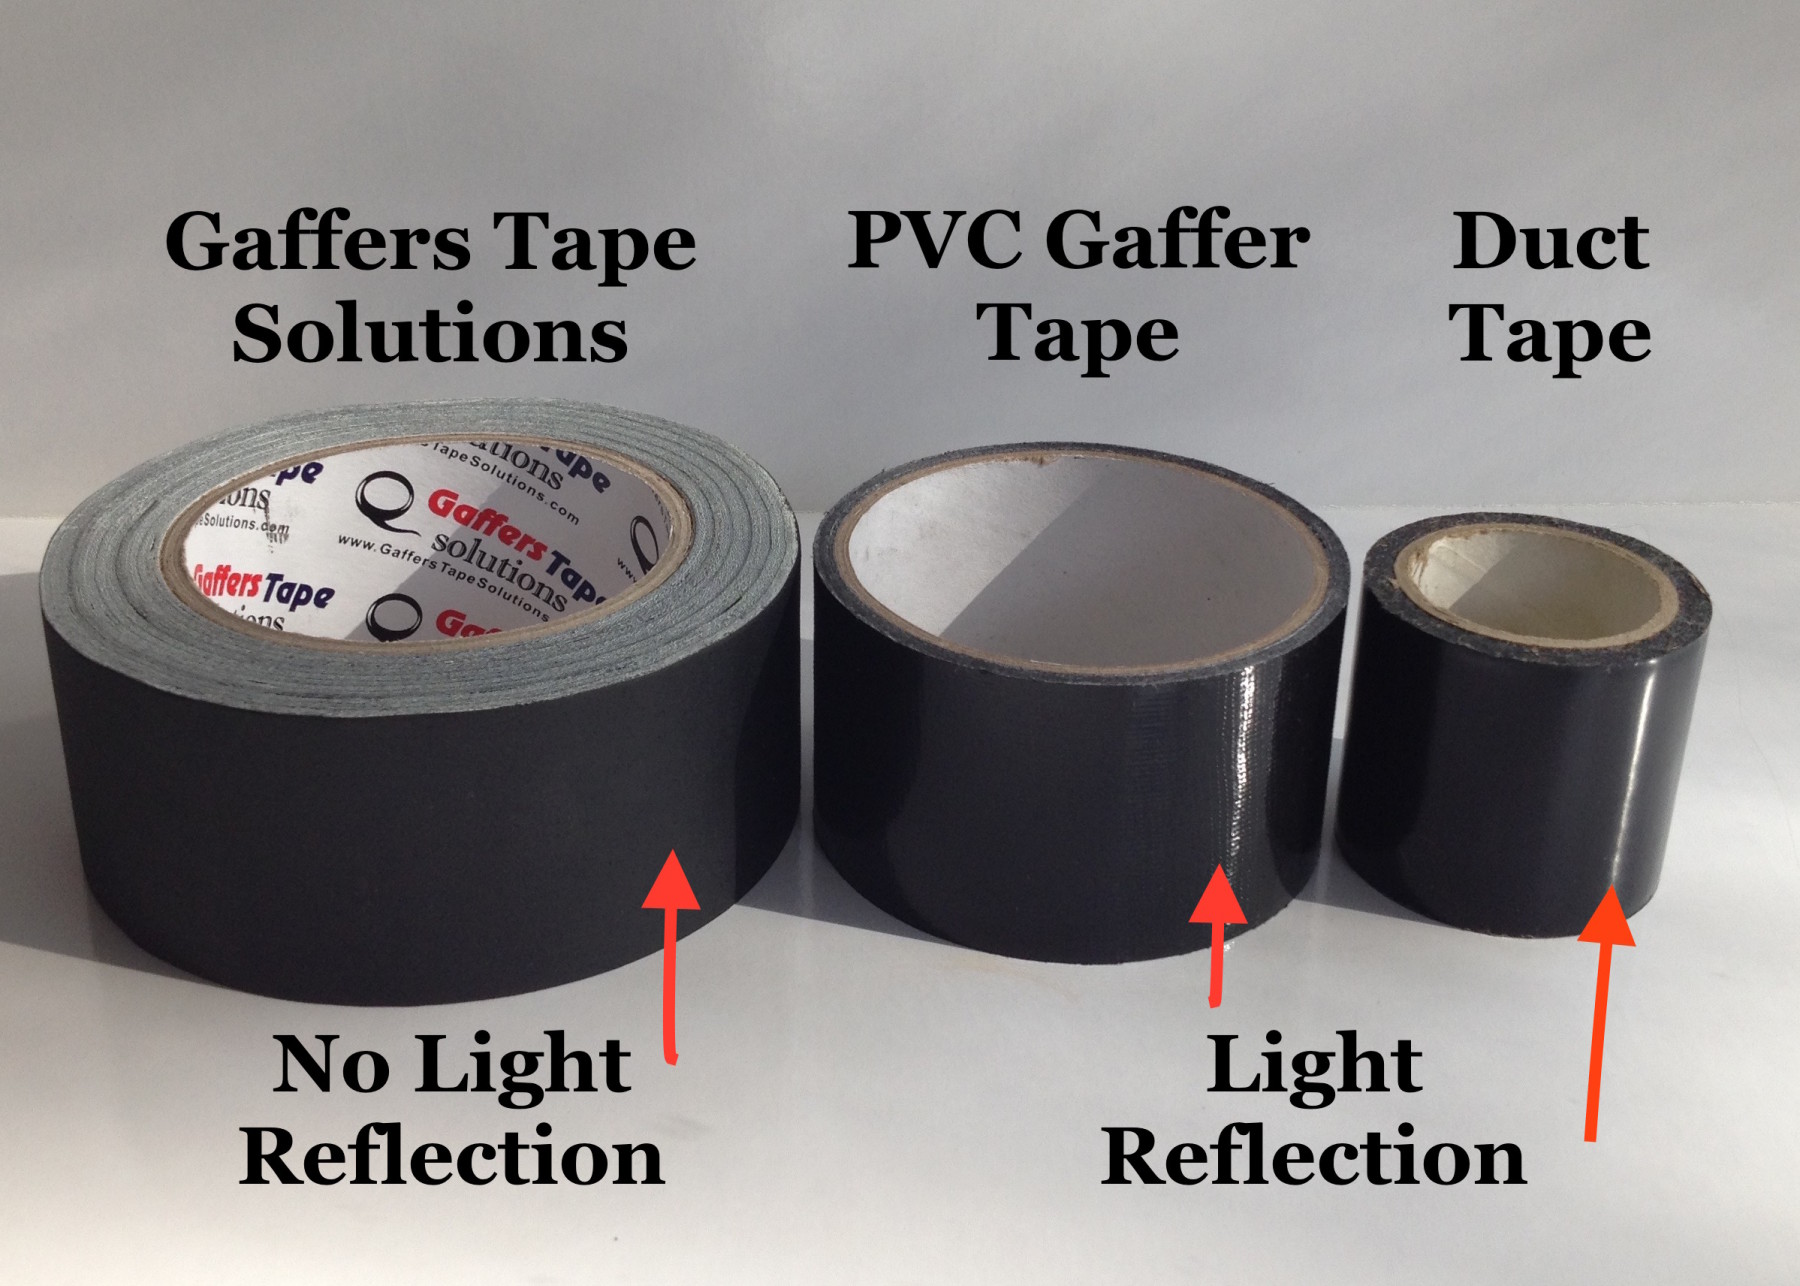 Heat Reflective Tape >> Best Gaffer Tape On Amazon | Gaffers Tape Solutions